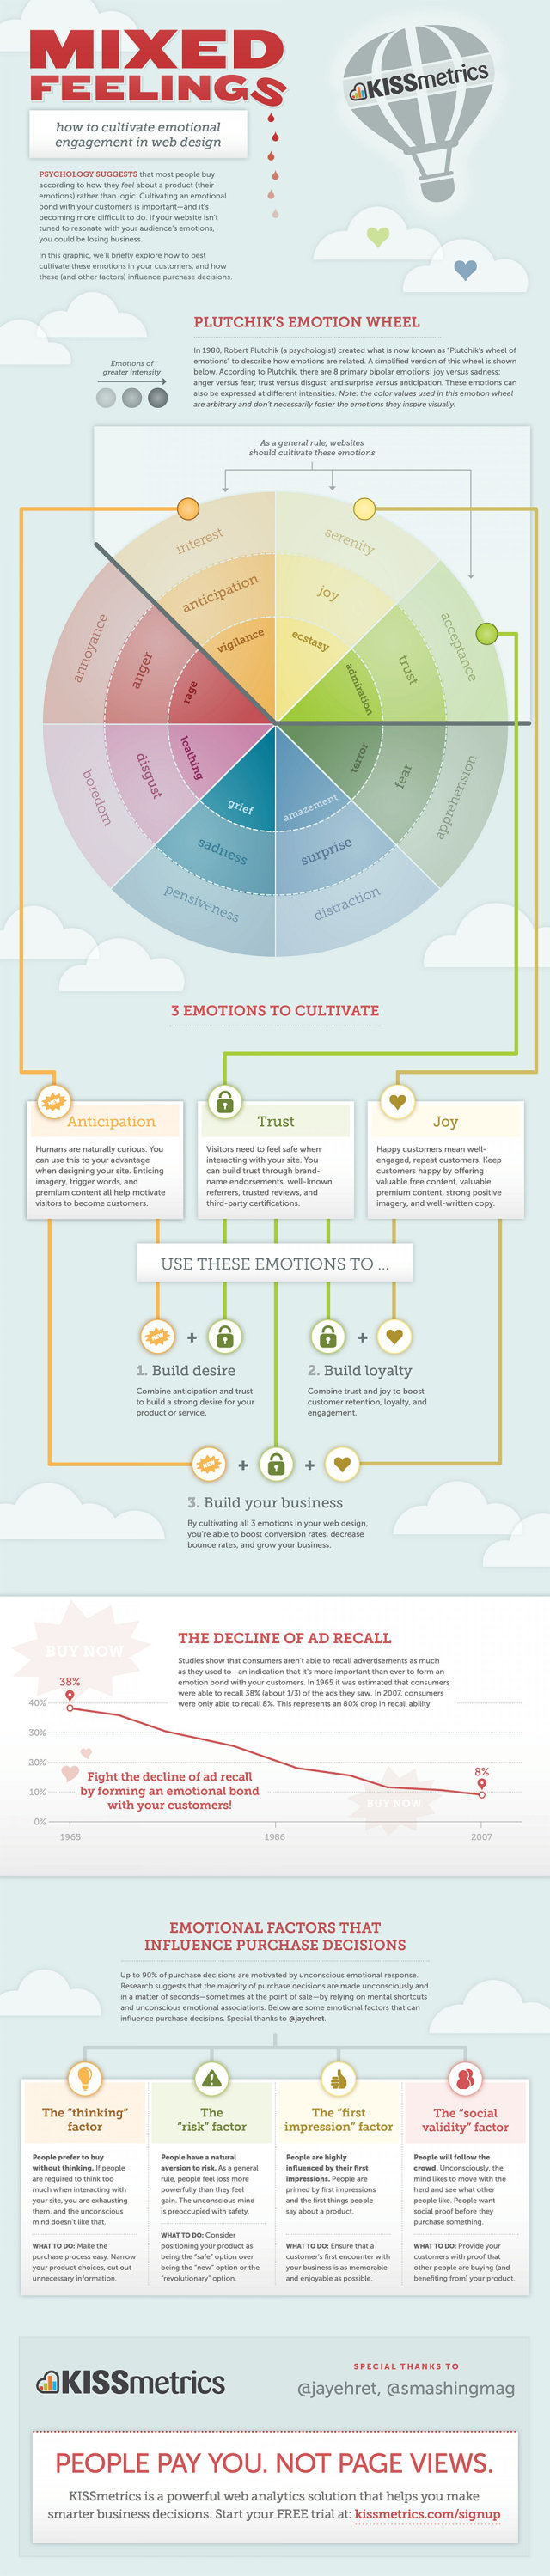 Web Design Psychology: 3 Things Your Site Must Make Your Visitors Feel #Infographic